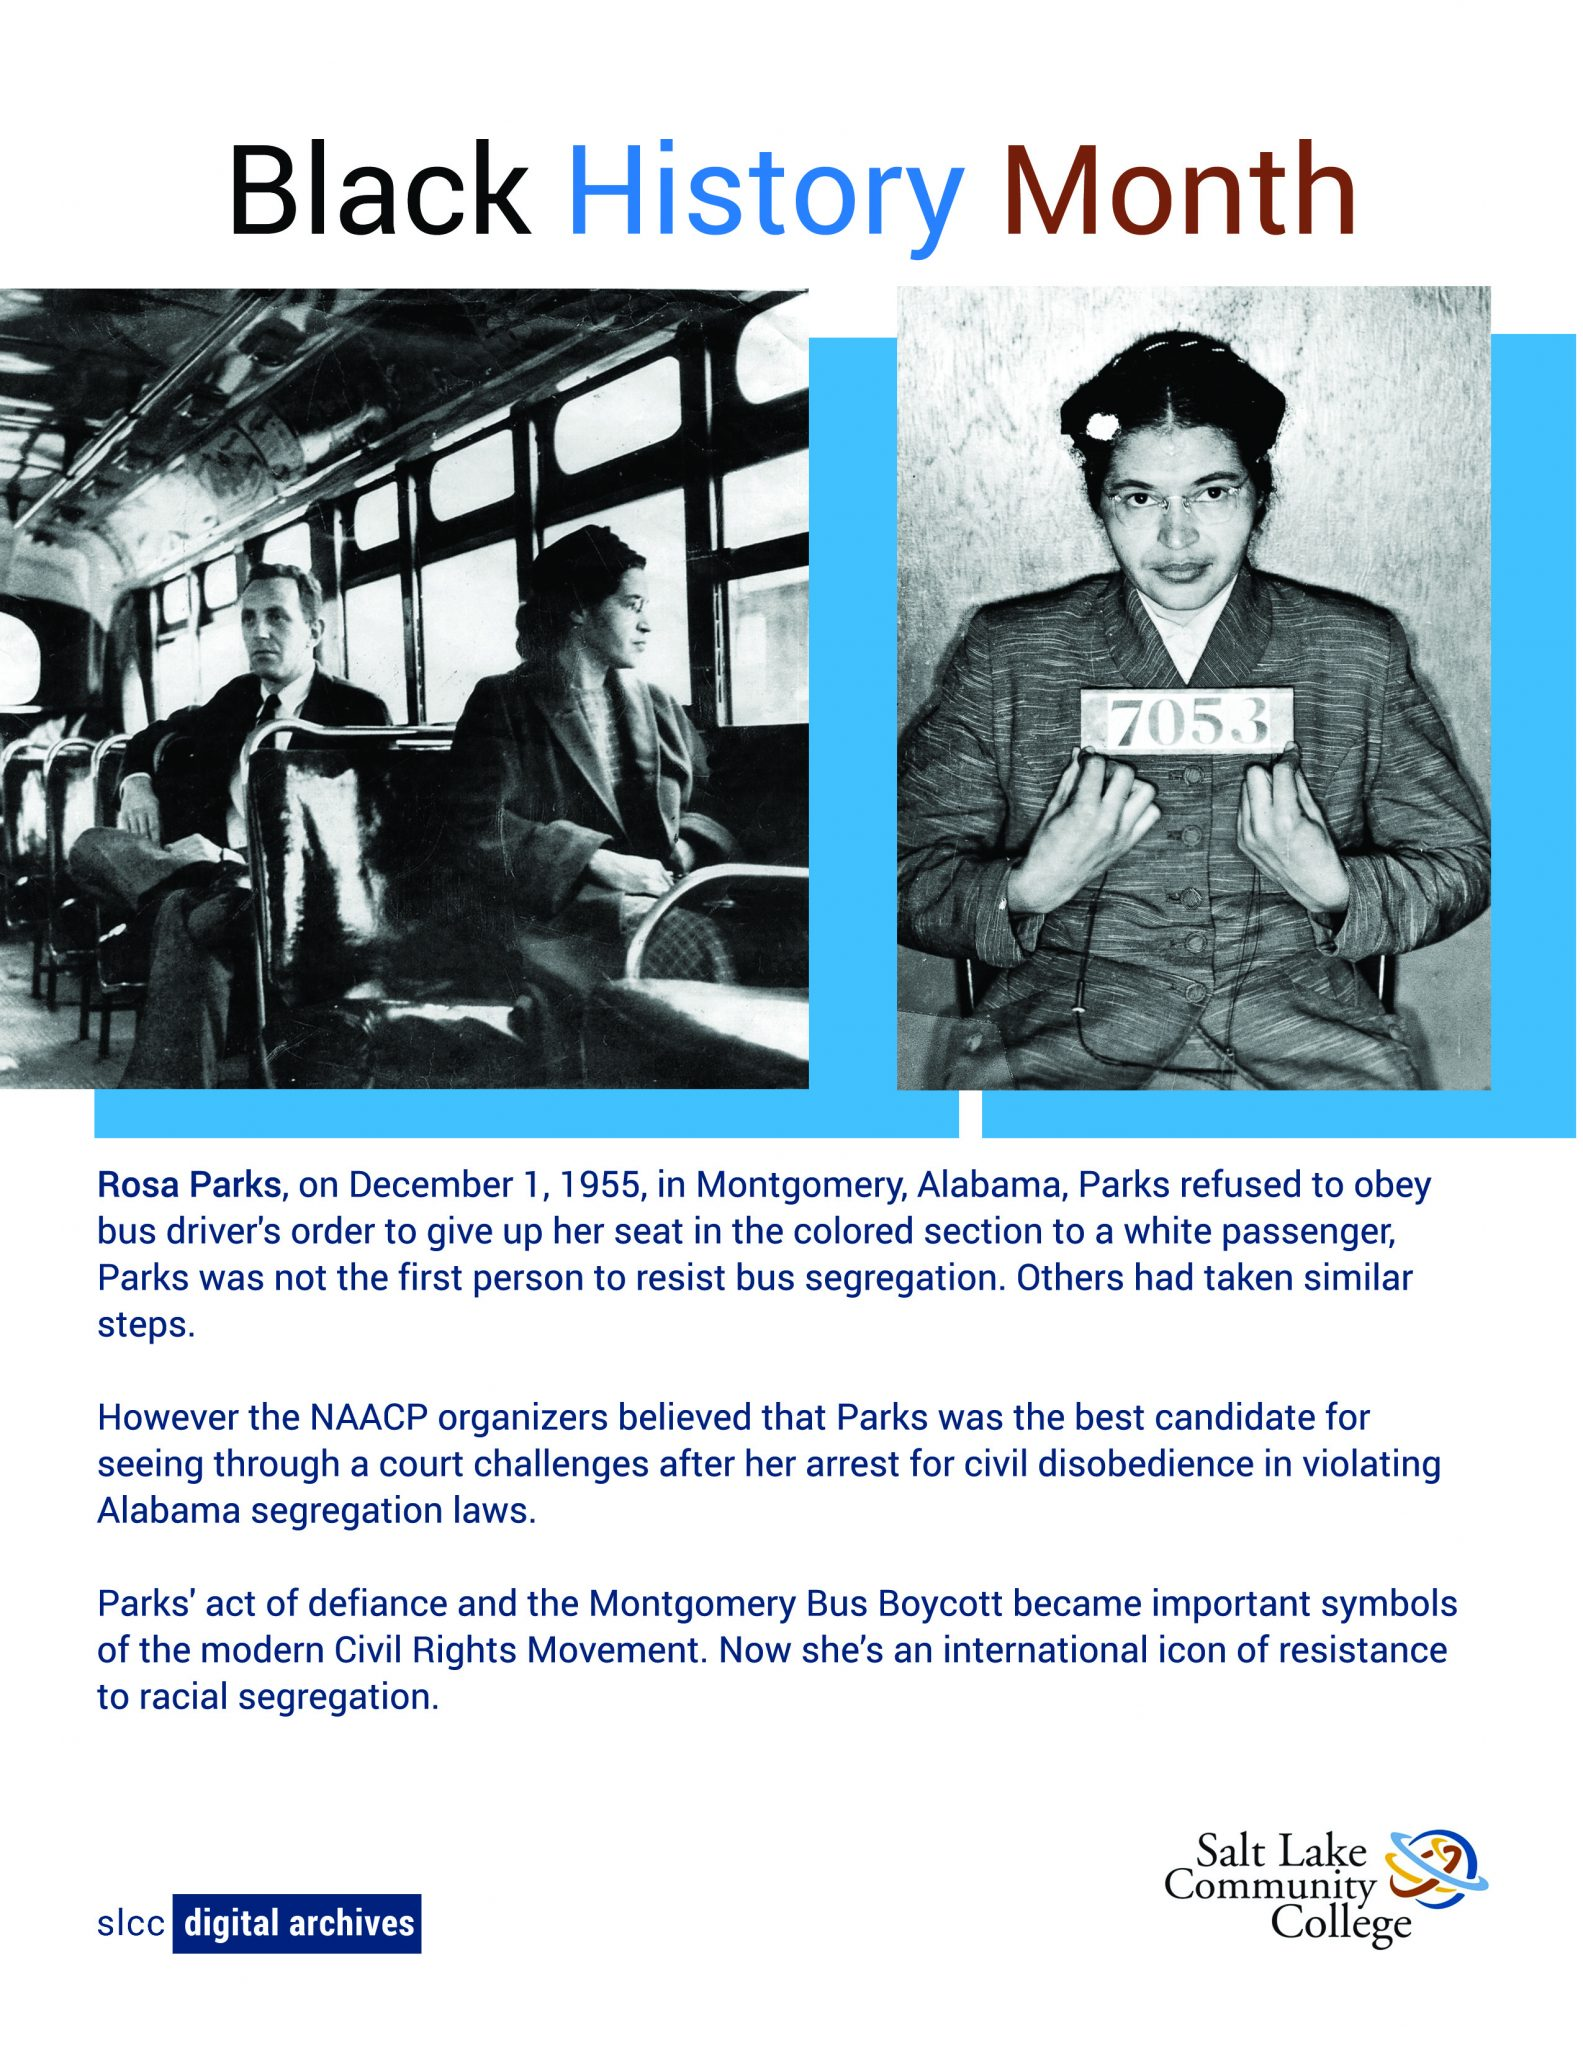 Photo of Rosa Parks and a white man on a bus as well as a the mugshot from Rosa Parks' arrest